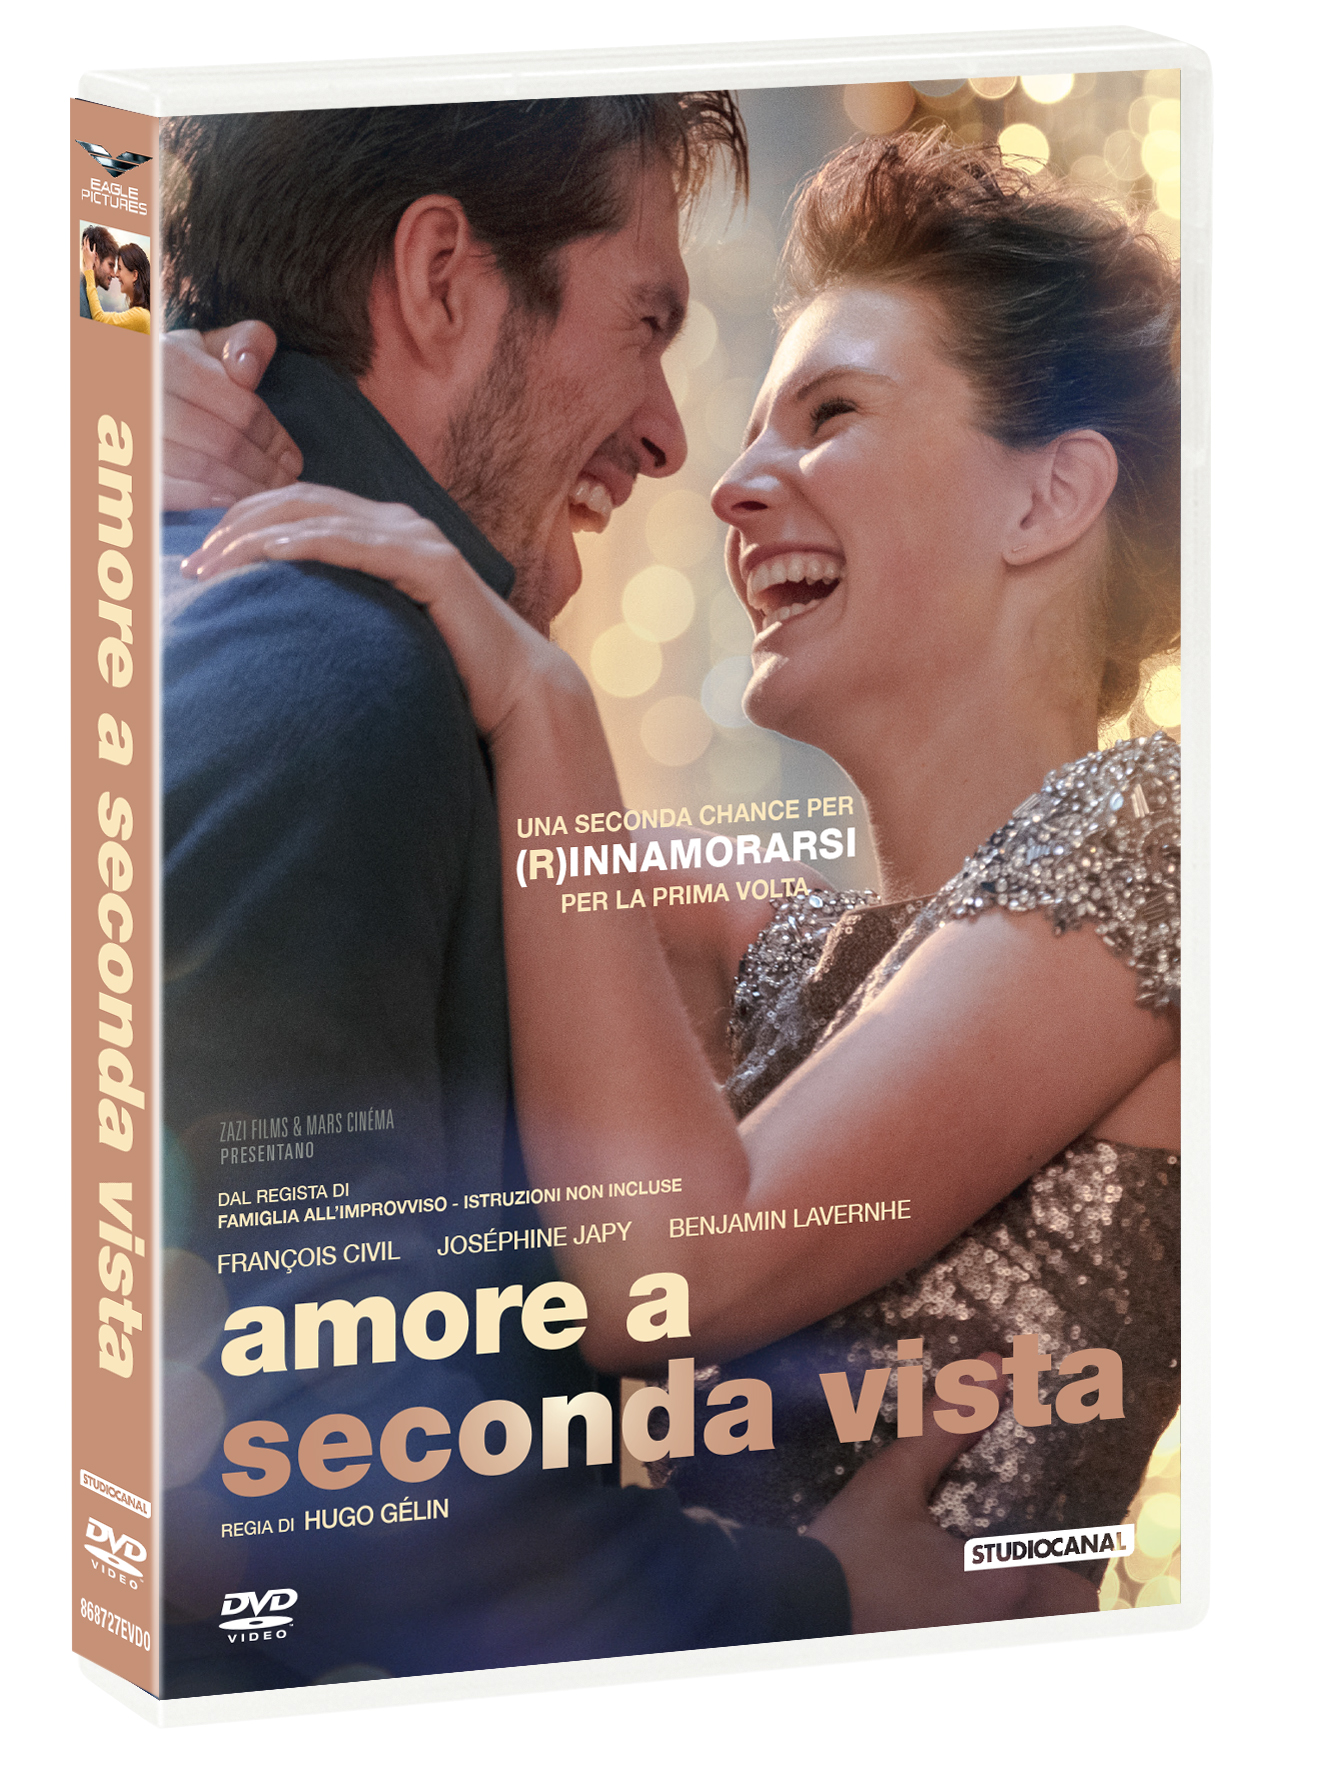 AMORE A SECONDA VISTA (DVD)